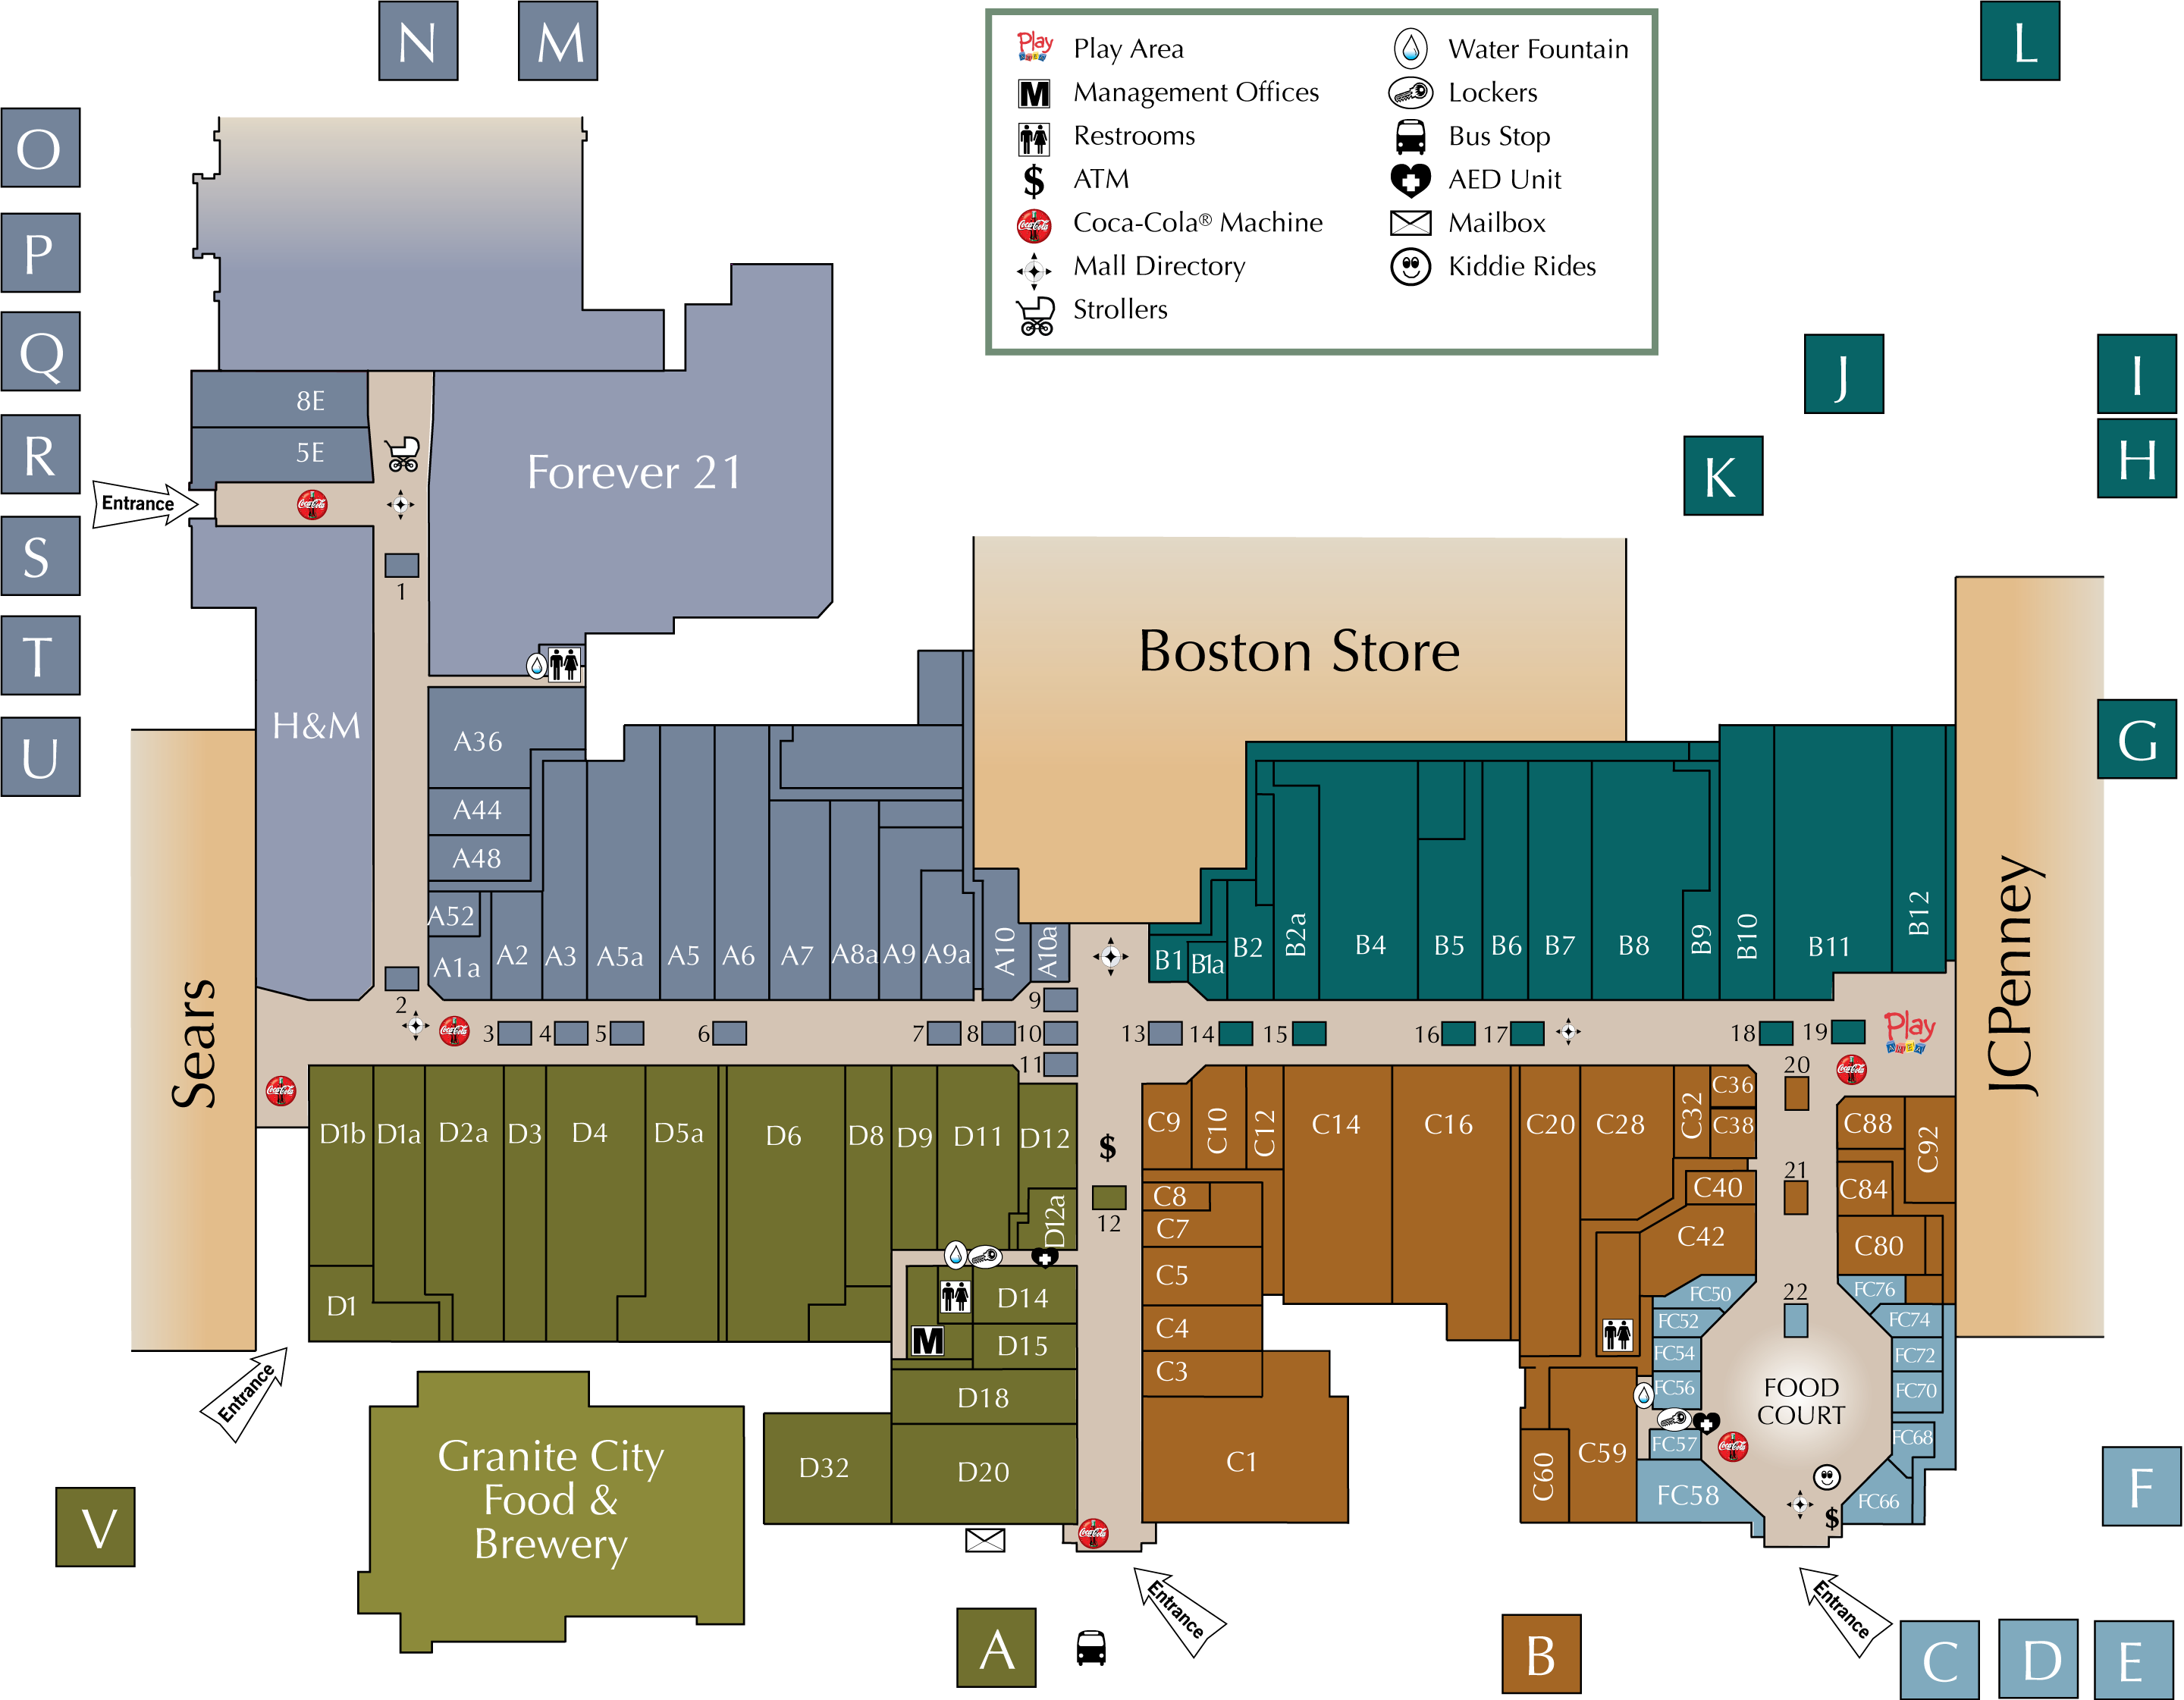 West Towne Mall directory map